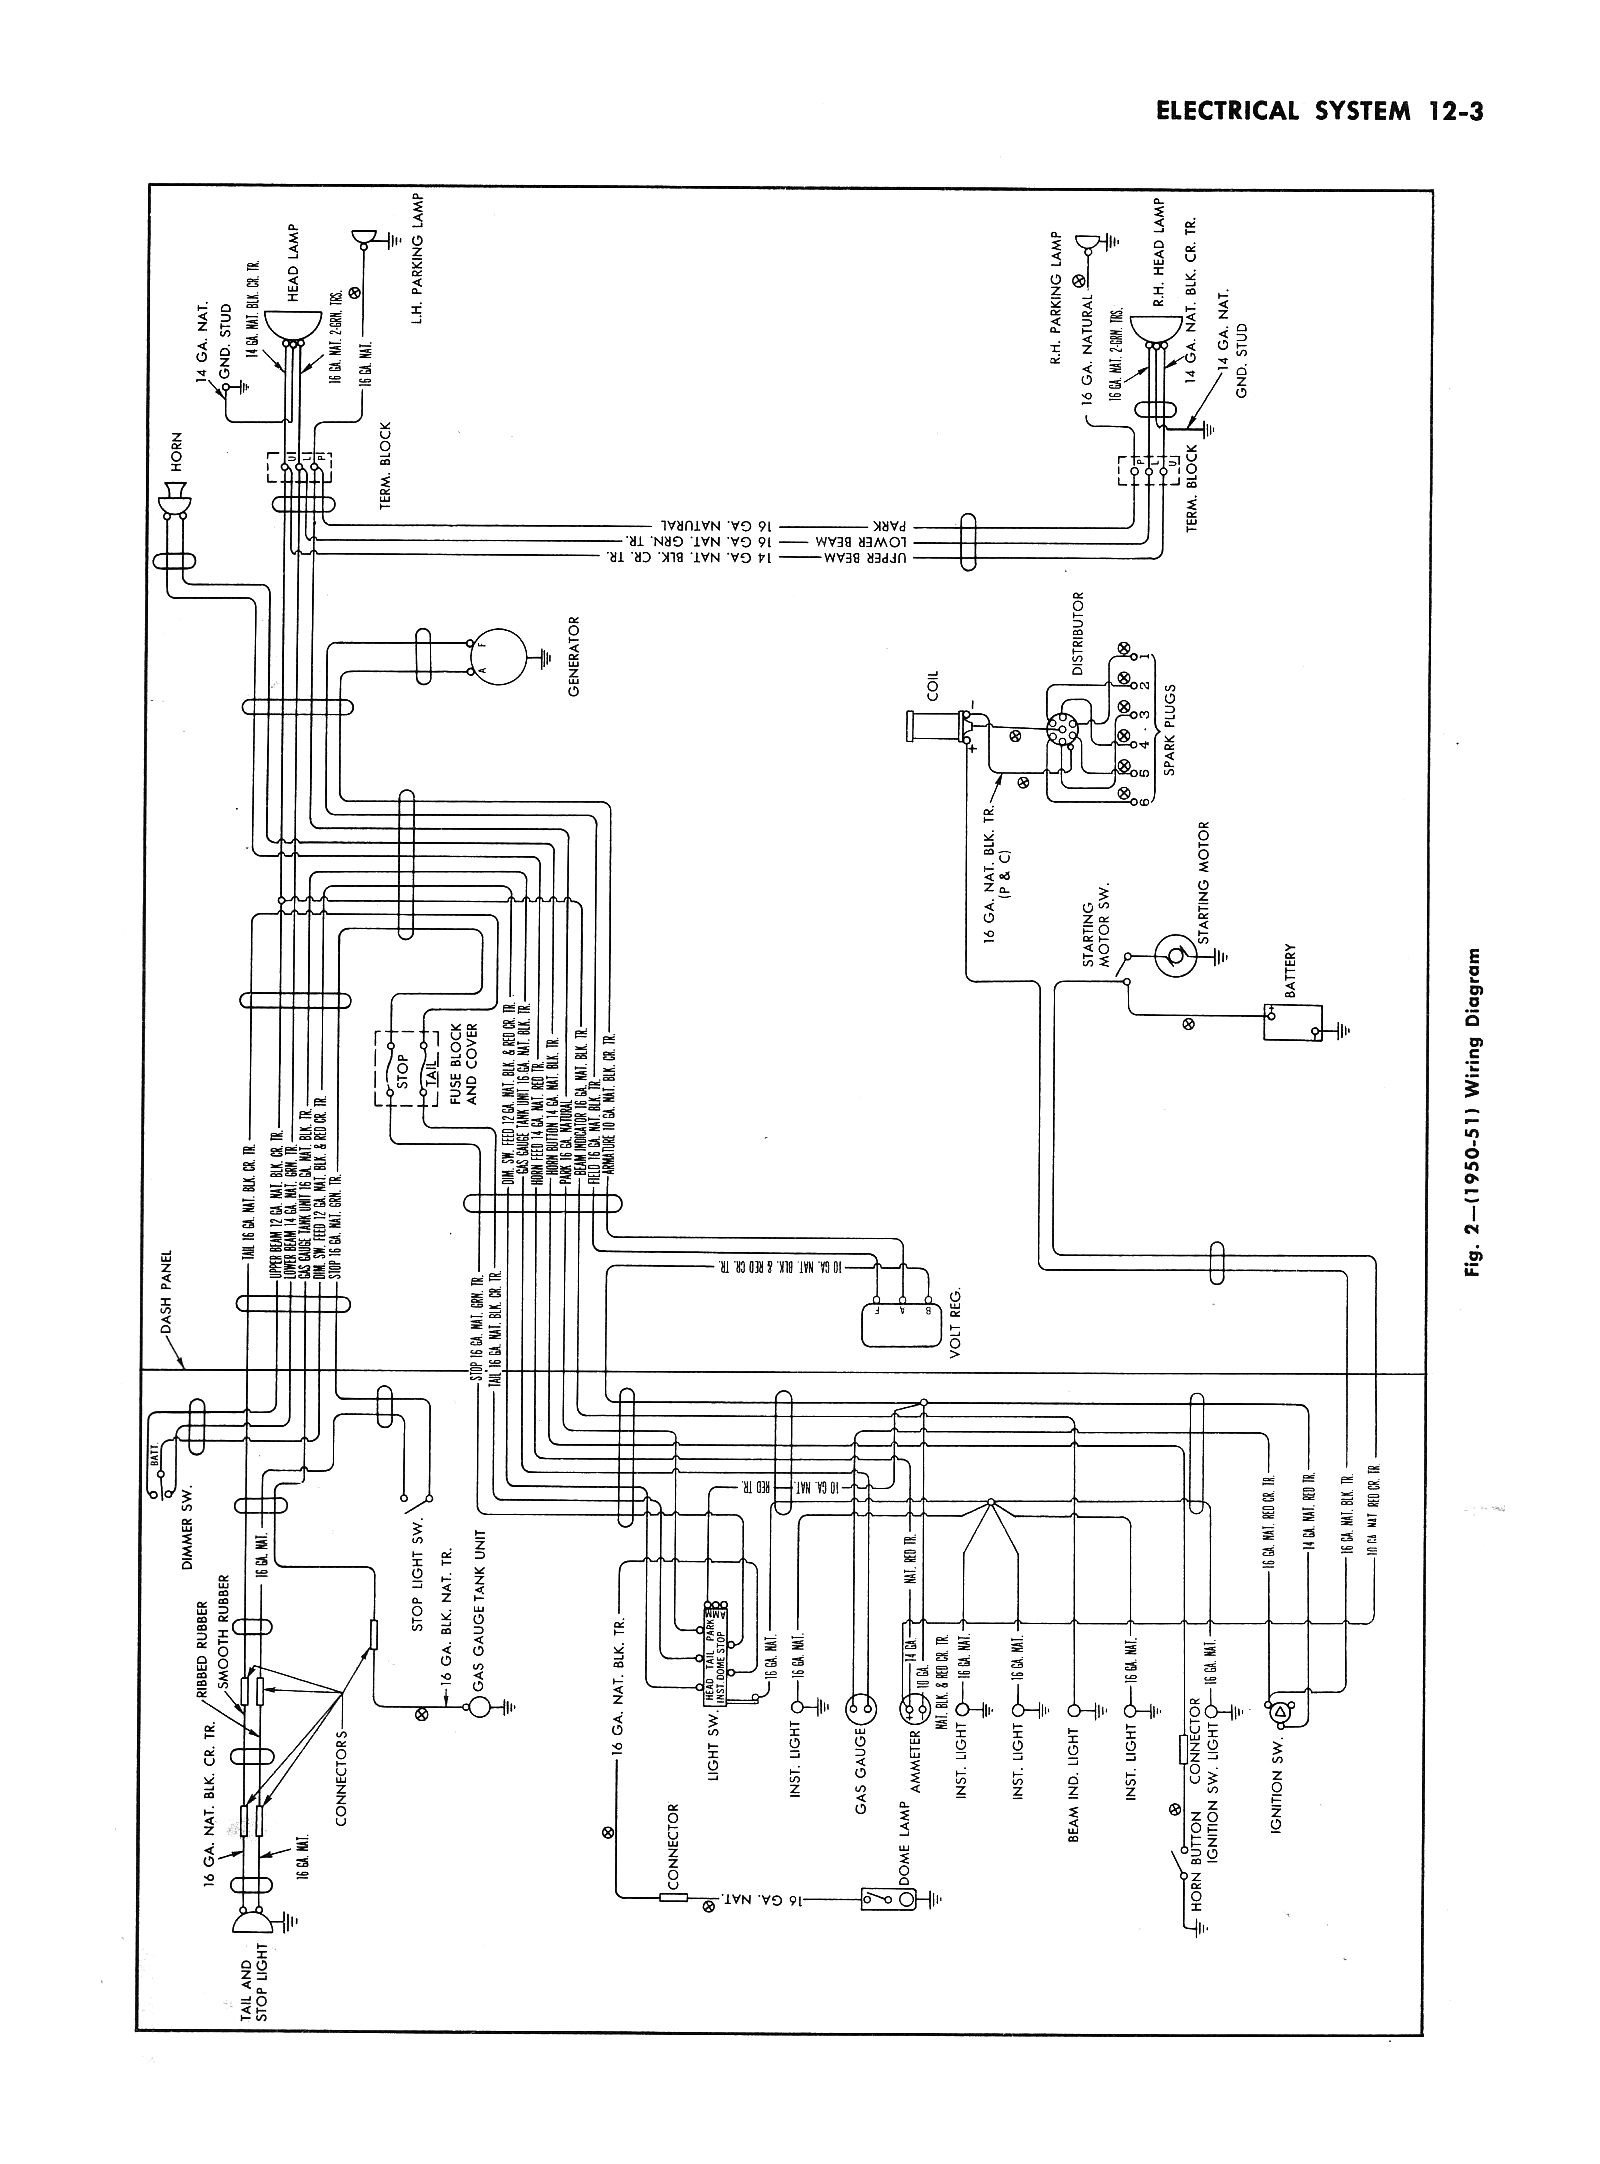 1954 chevy truck engine diagram wiring diagram1954 chevy truck engine diagram